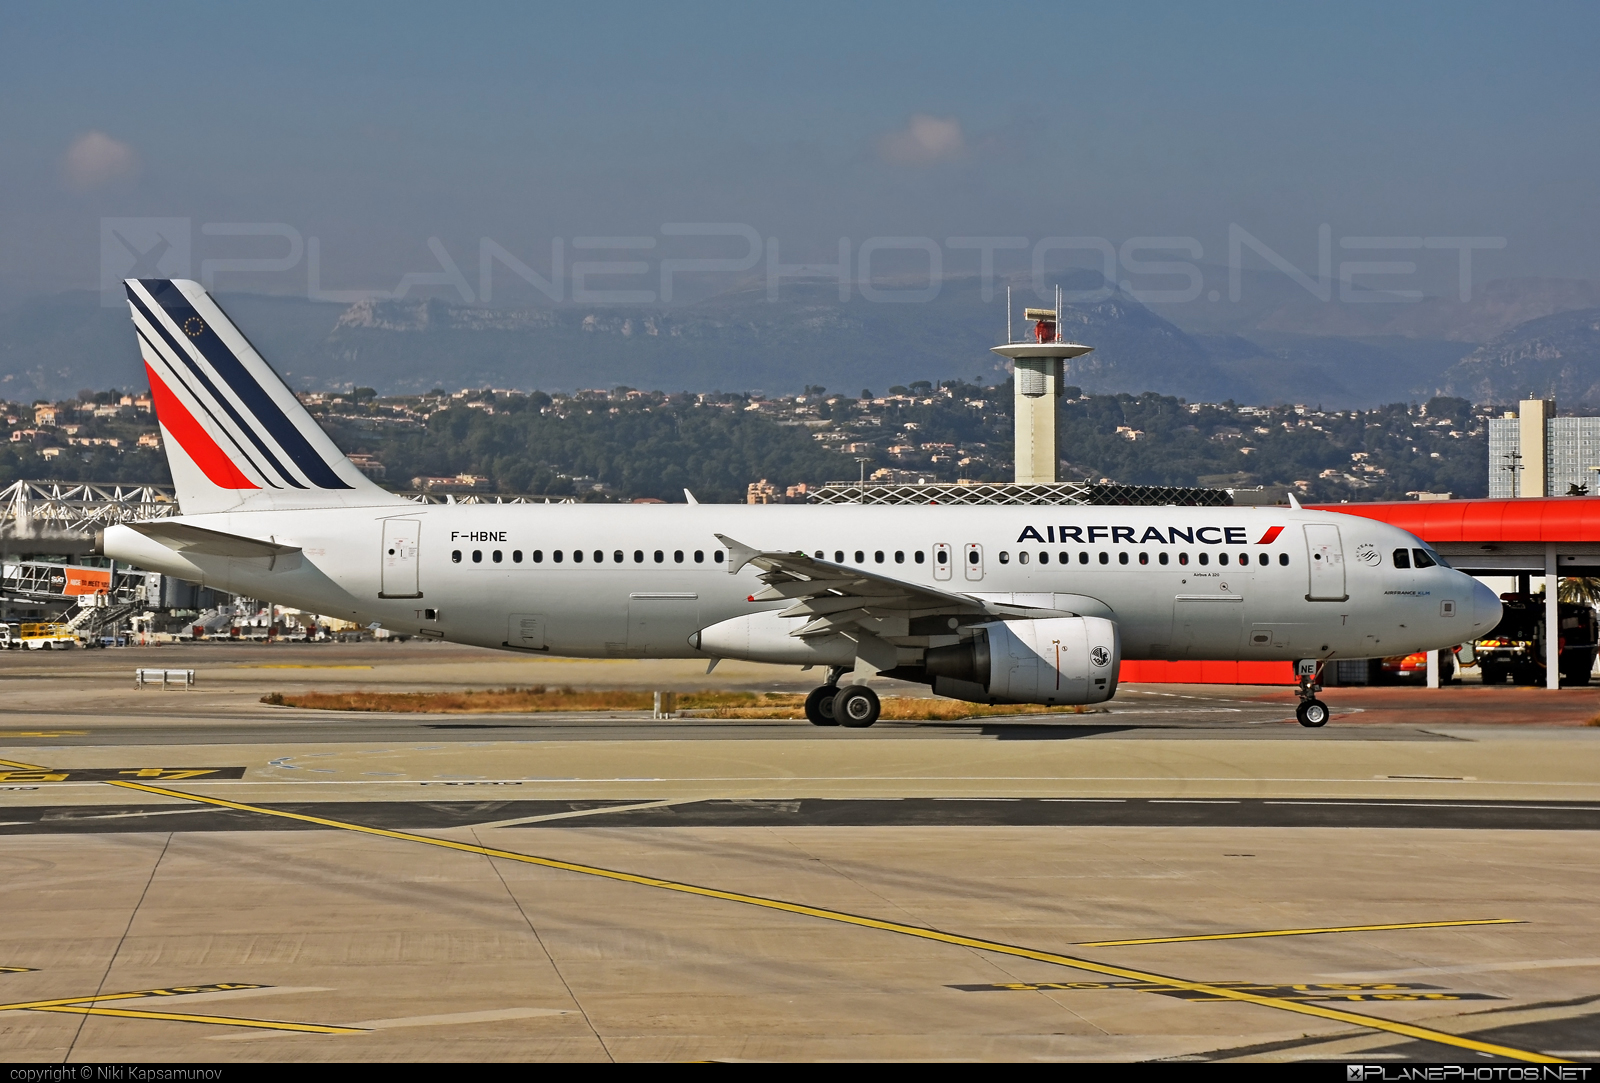 Airbus A320-214 - F-HBNE operated by Air France #a320 #a320family #airbus #airbus320 #airfrance